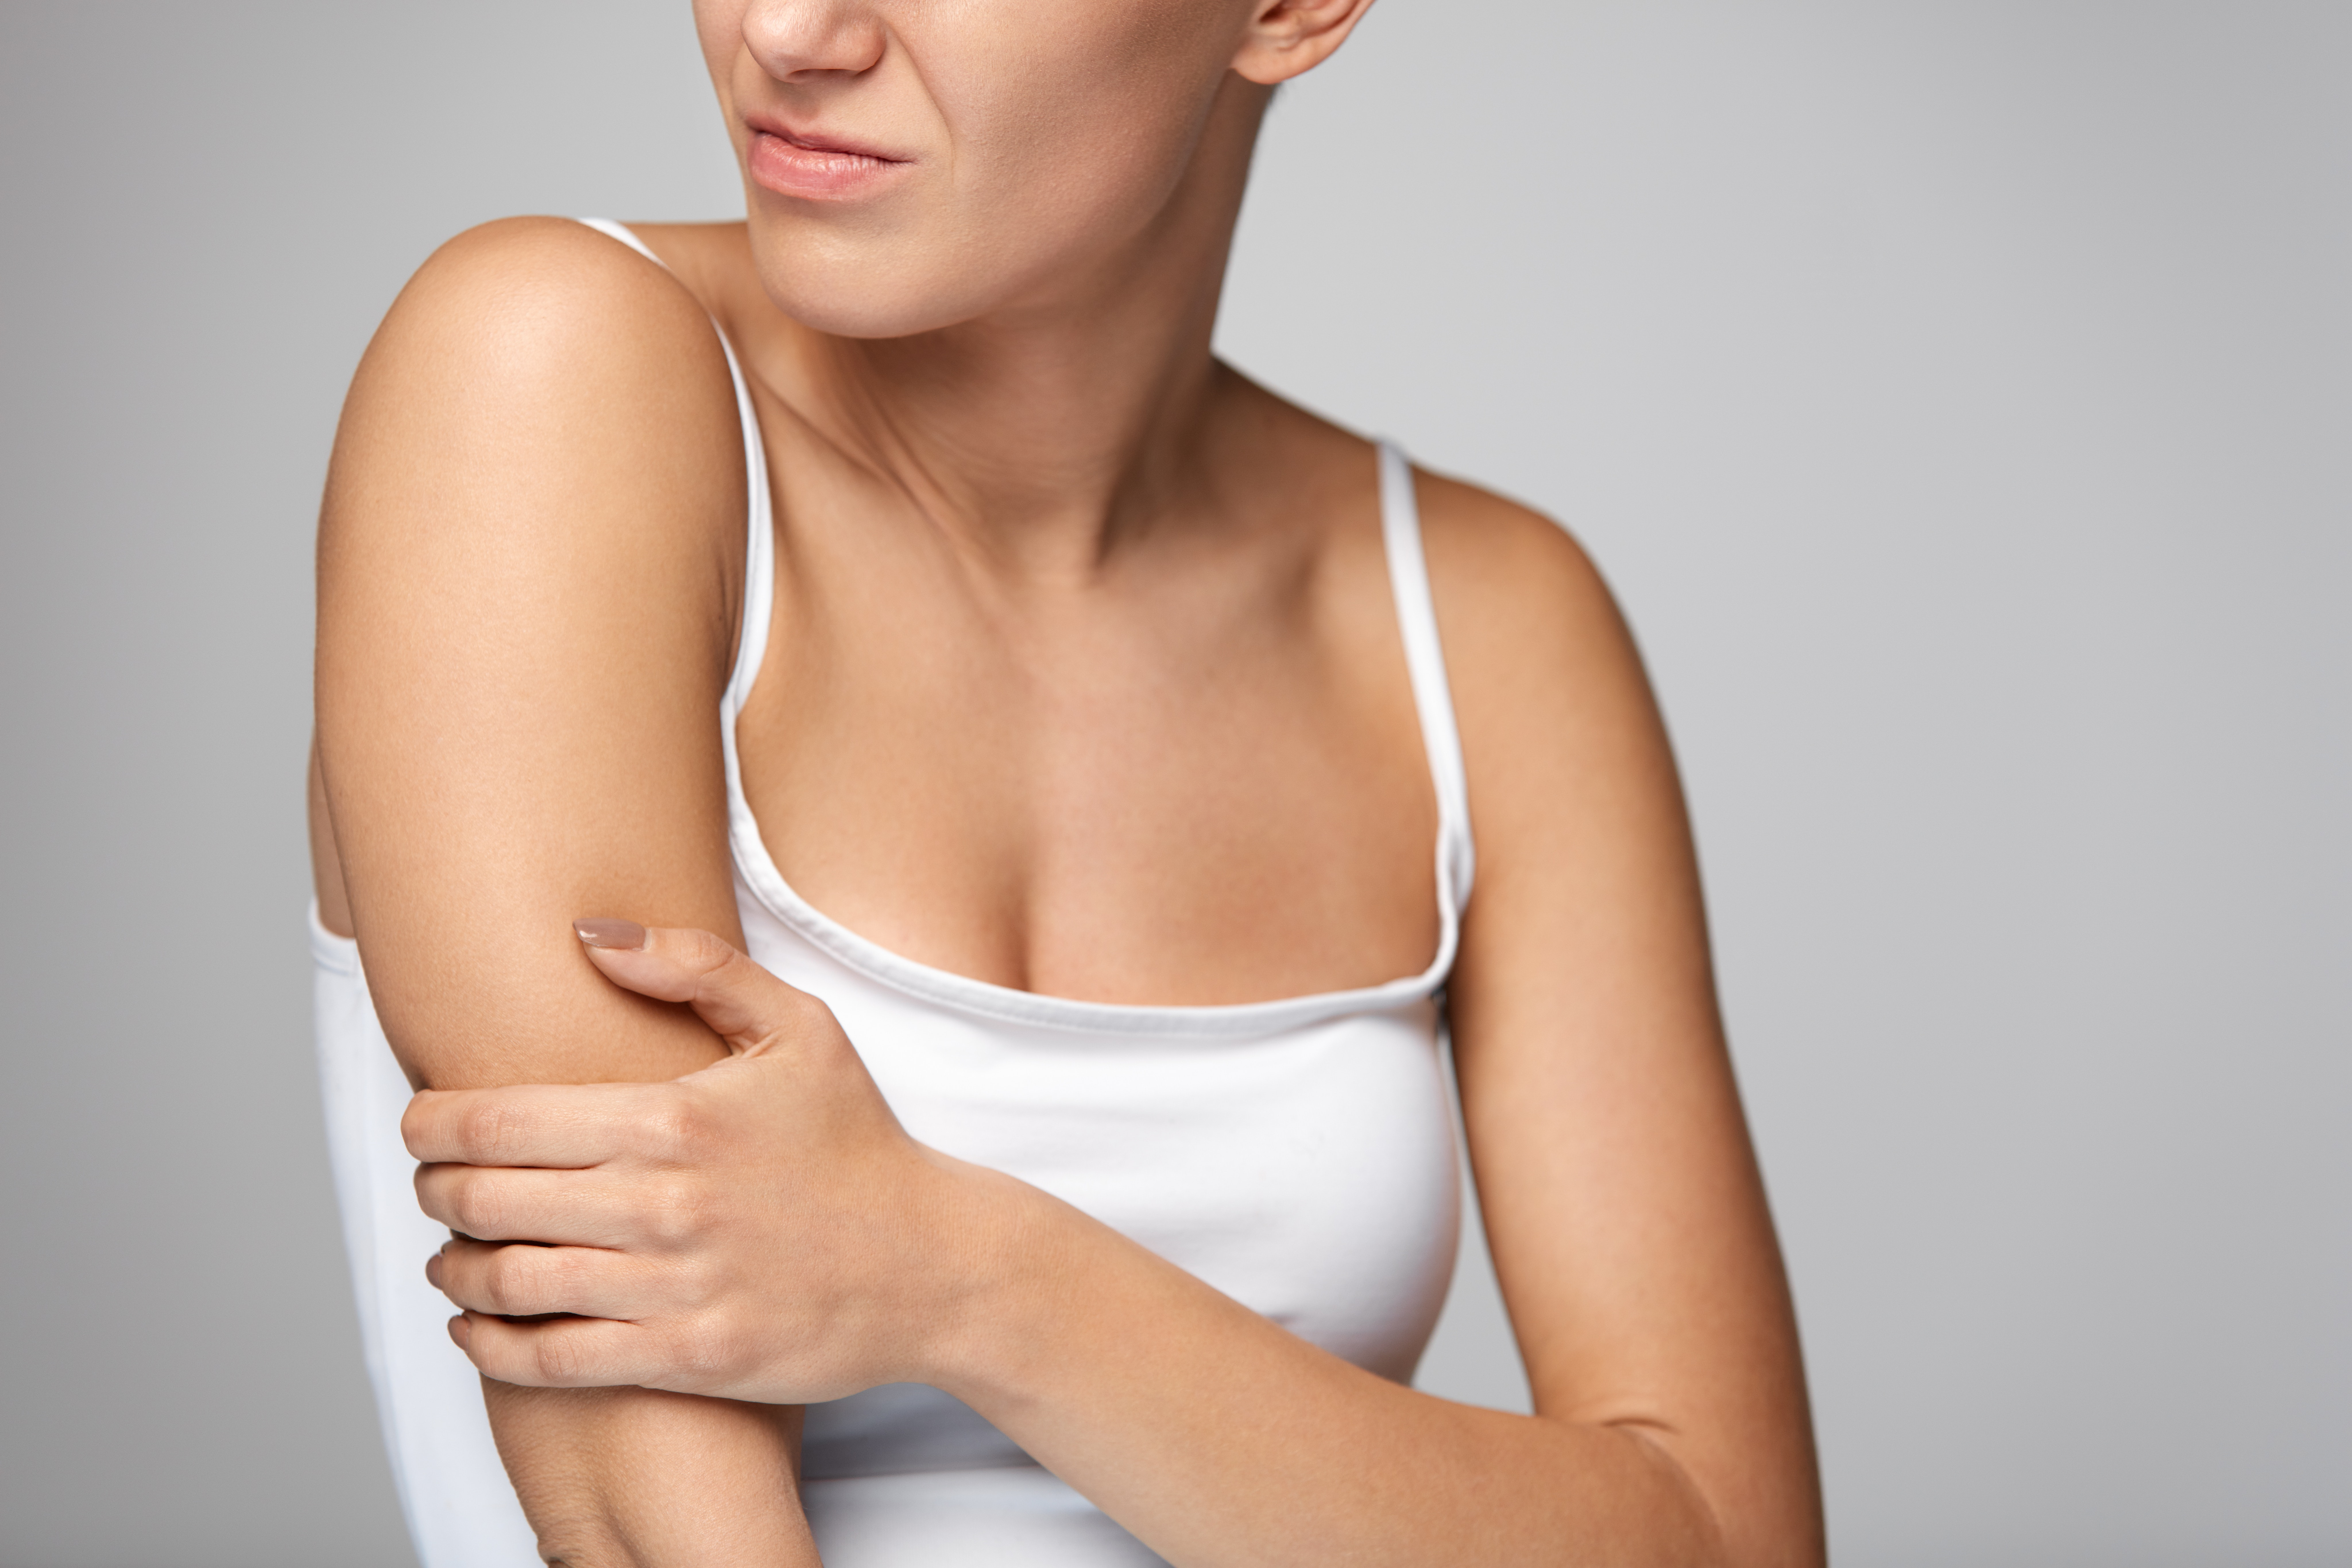 An image depicting a person suffering from pain in both forearms symptoms